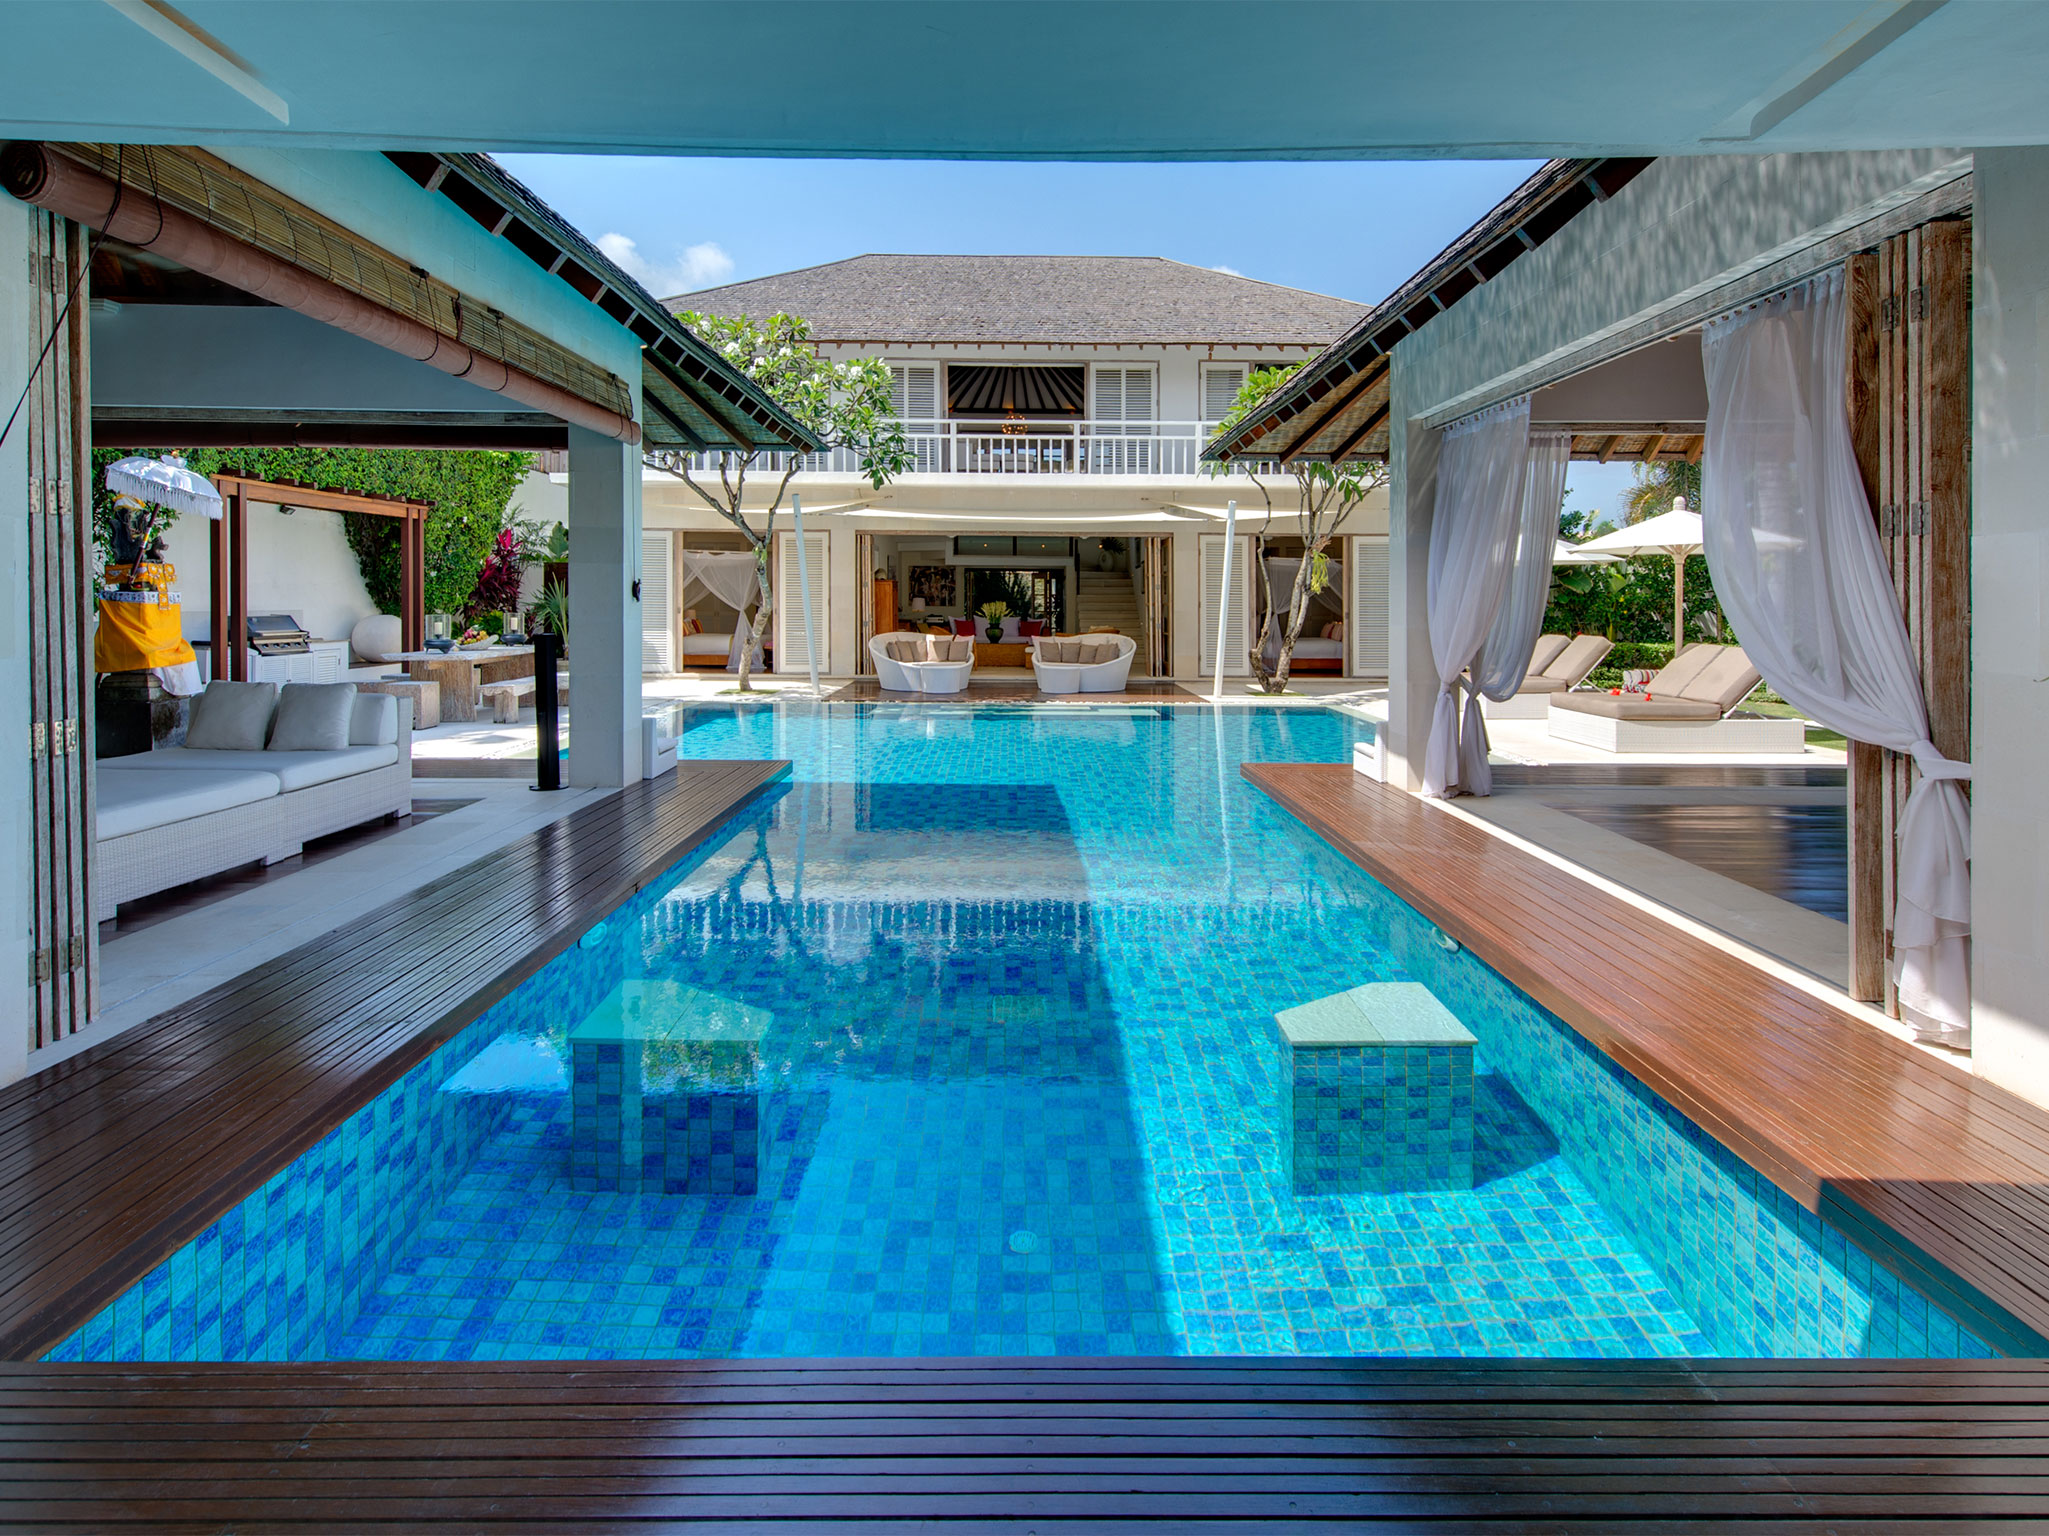 Villa jajaliluna an elite haven pictures reviews availability bali villas private and for Vacation rentals with private swimming pool